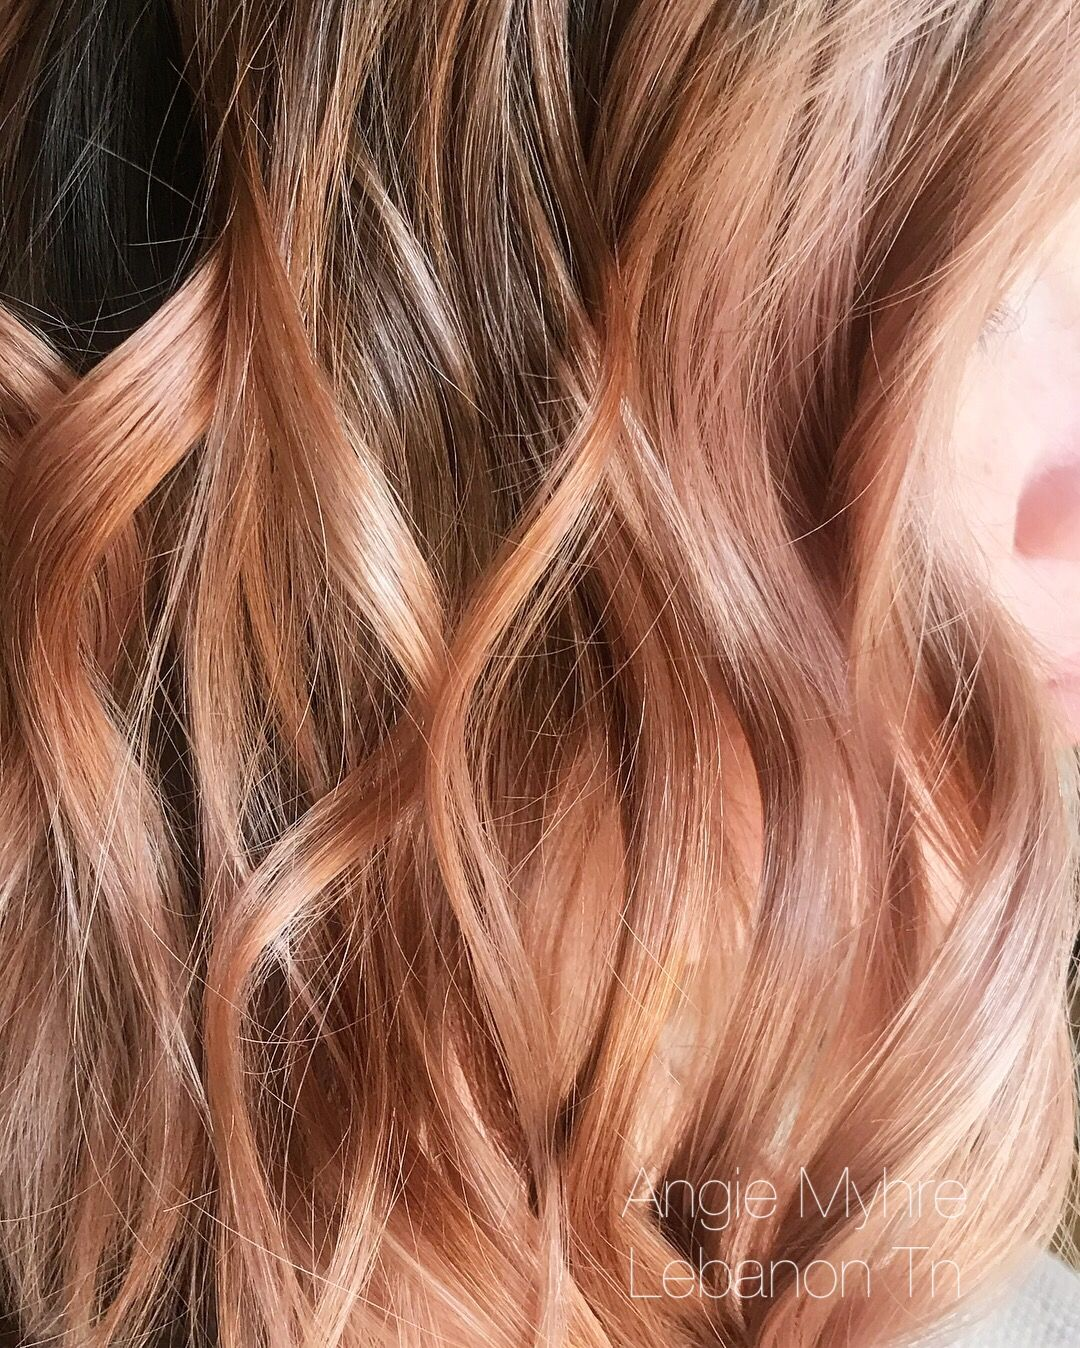 Rose gold hair pinterest